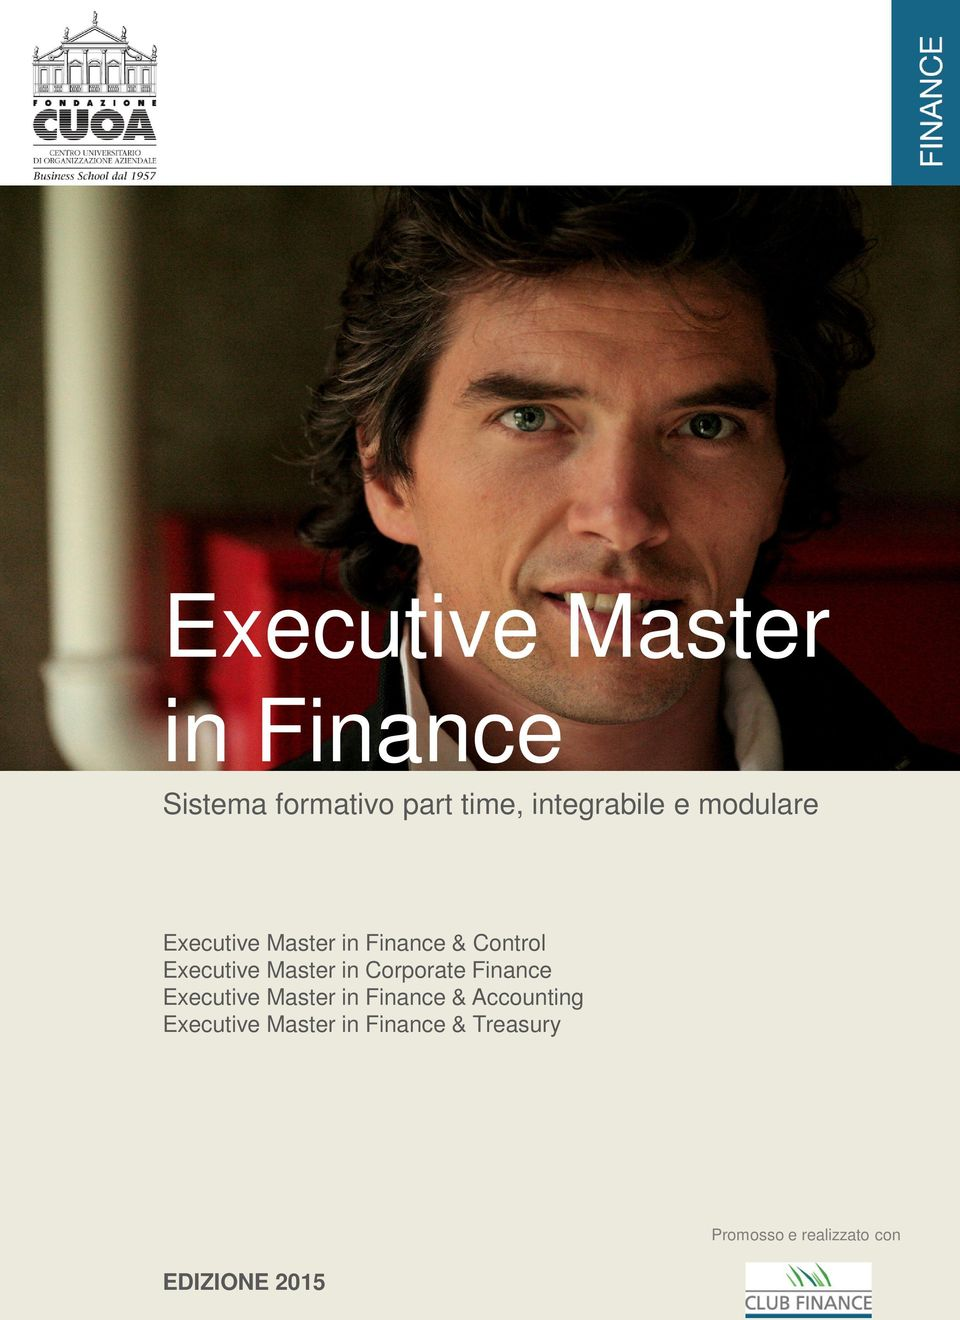 Corporate Finance Executive Master in Finance & Accounting Executive